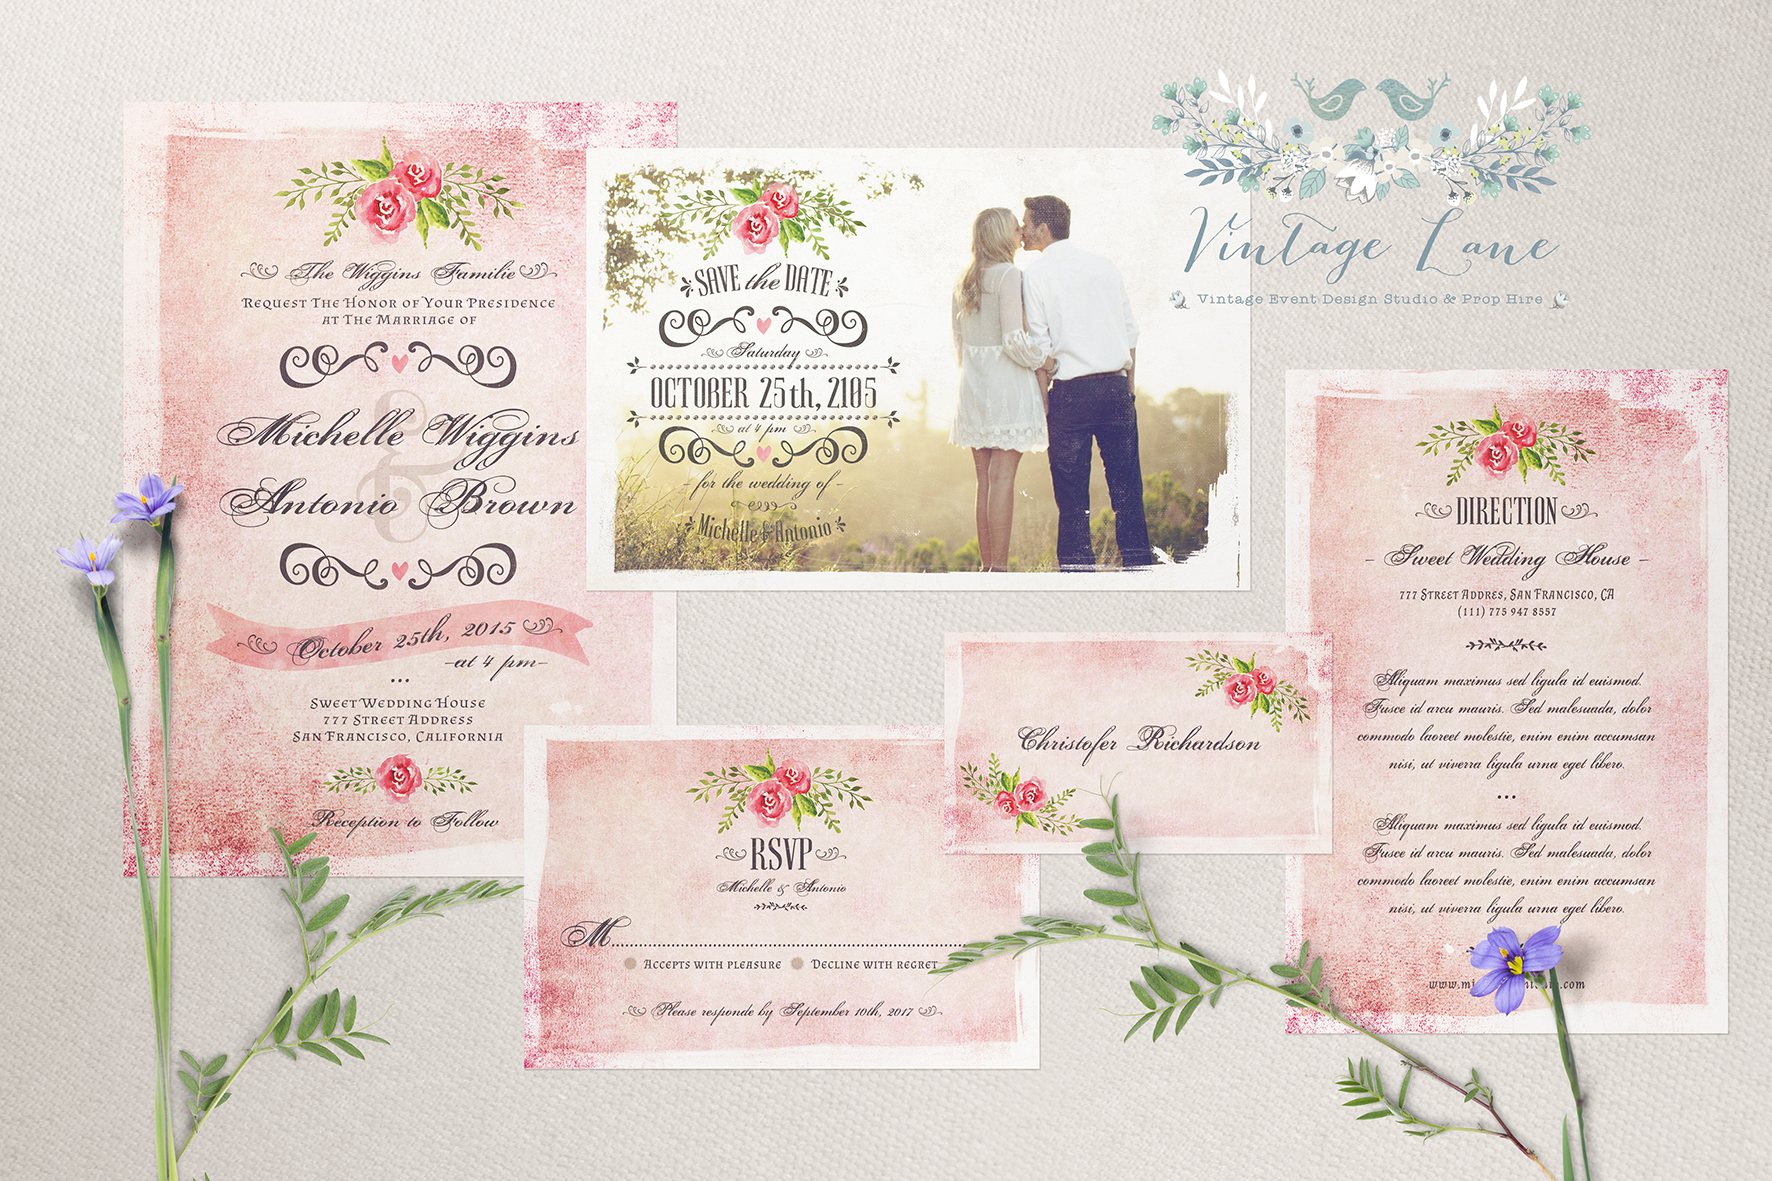 wedding invitations vintage wedding invitations northern ireland - Vintage Style Wedding Invitations